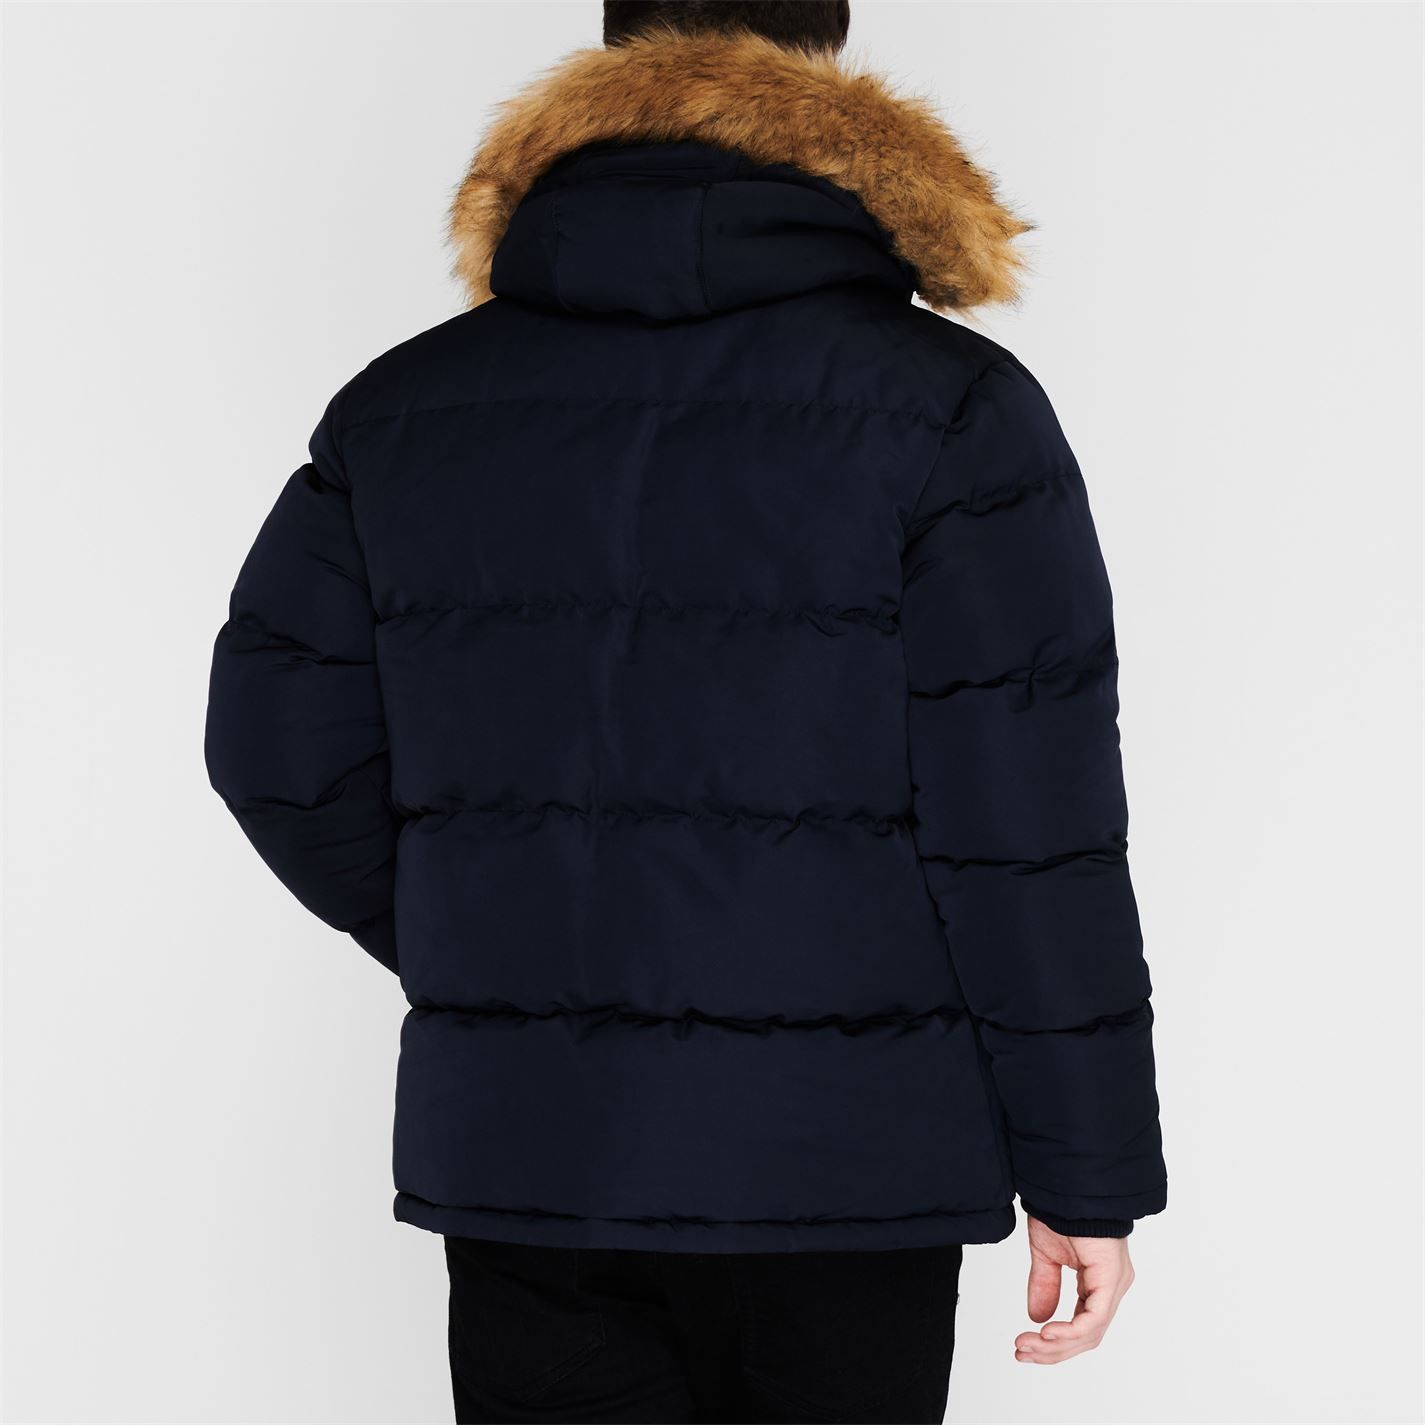 Soulcal Mens 2 Zip Bubble Jacket Outerwear Puffer Faux Hooded Casual Winter Top